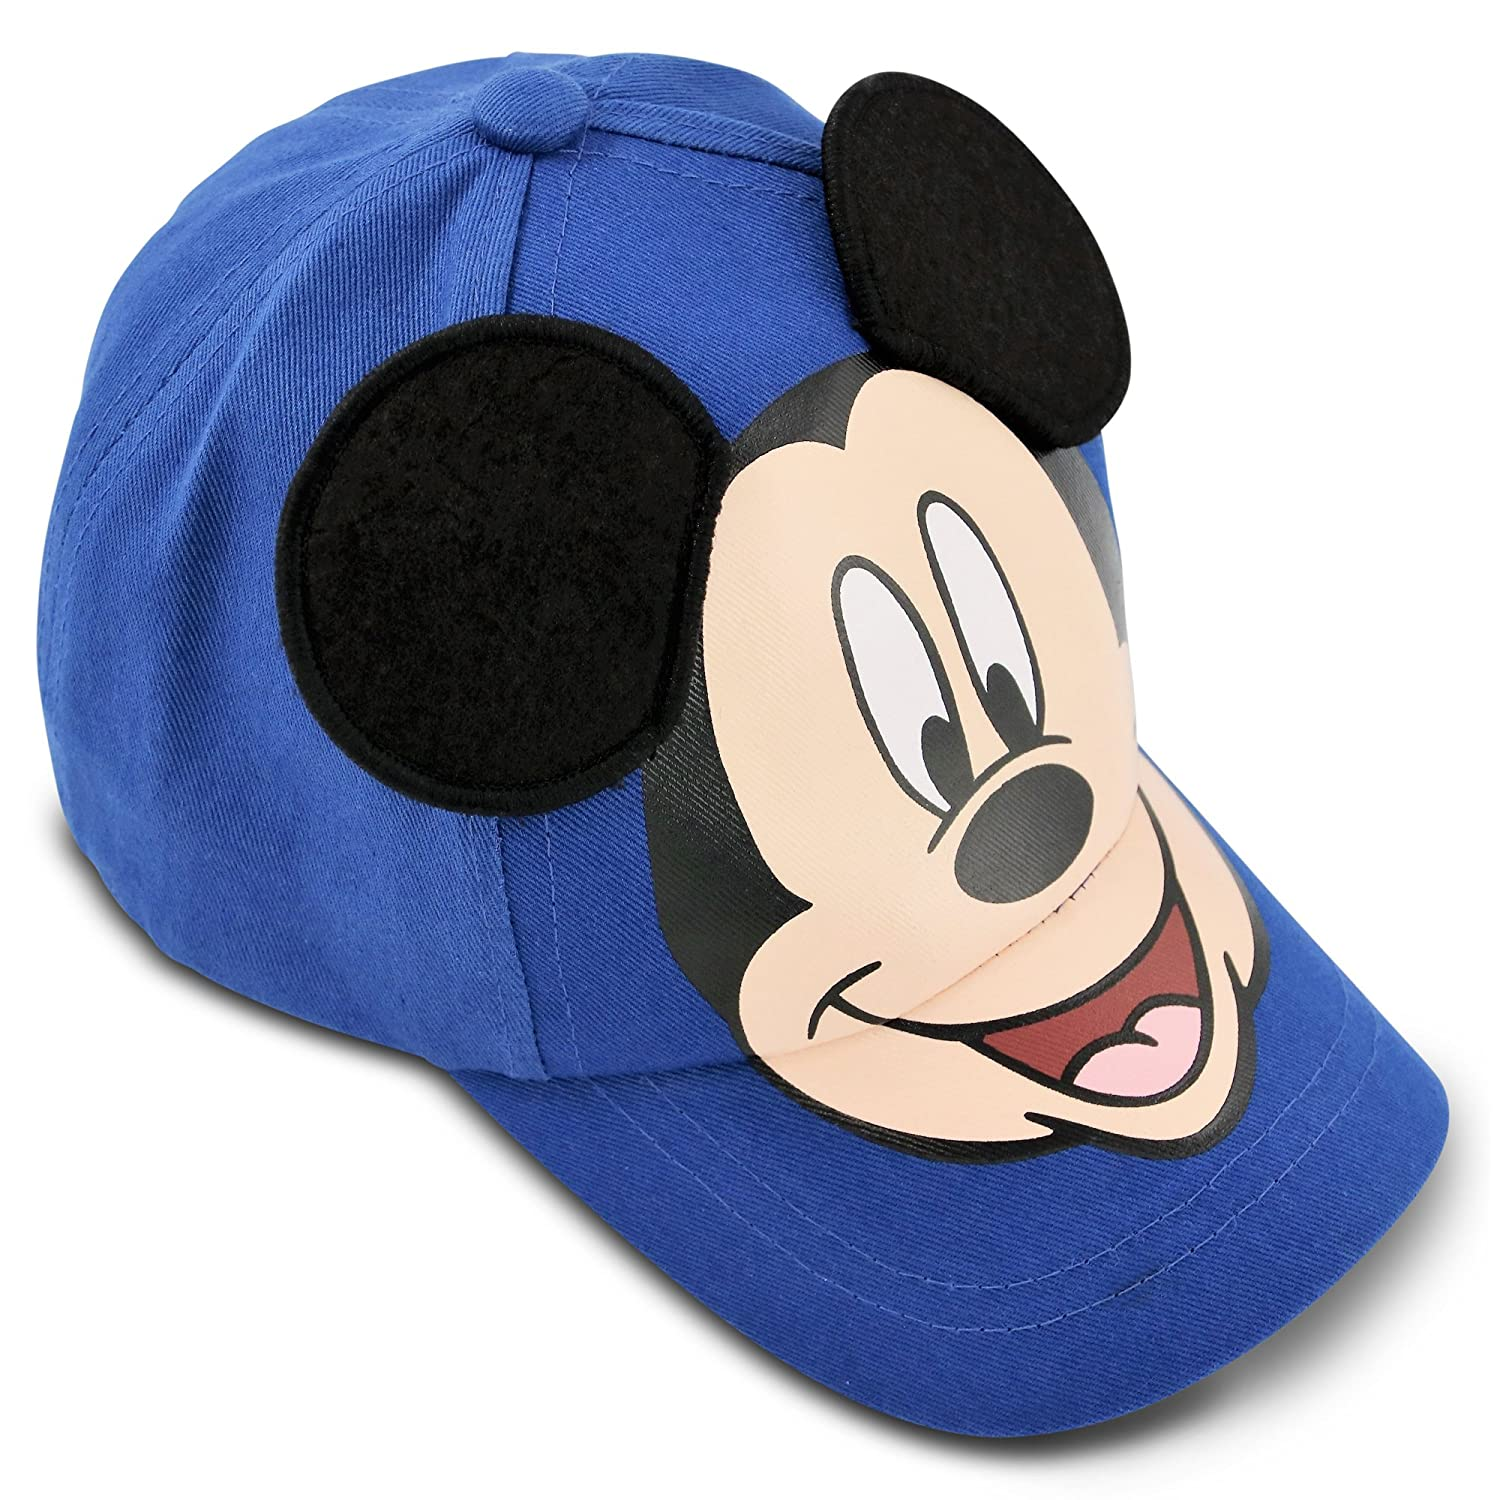 92cc1b56b3e Amazon.com  Disney Little Boys Mickey Mouse Cotton Baseball Cap ...